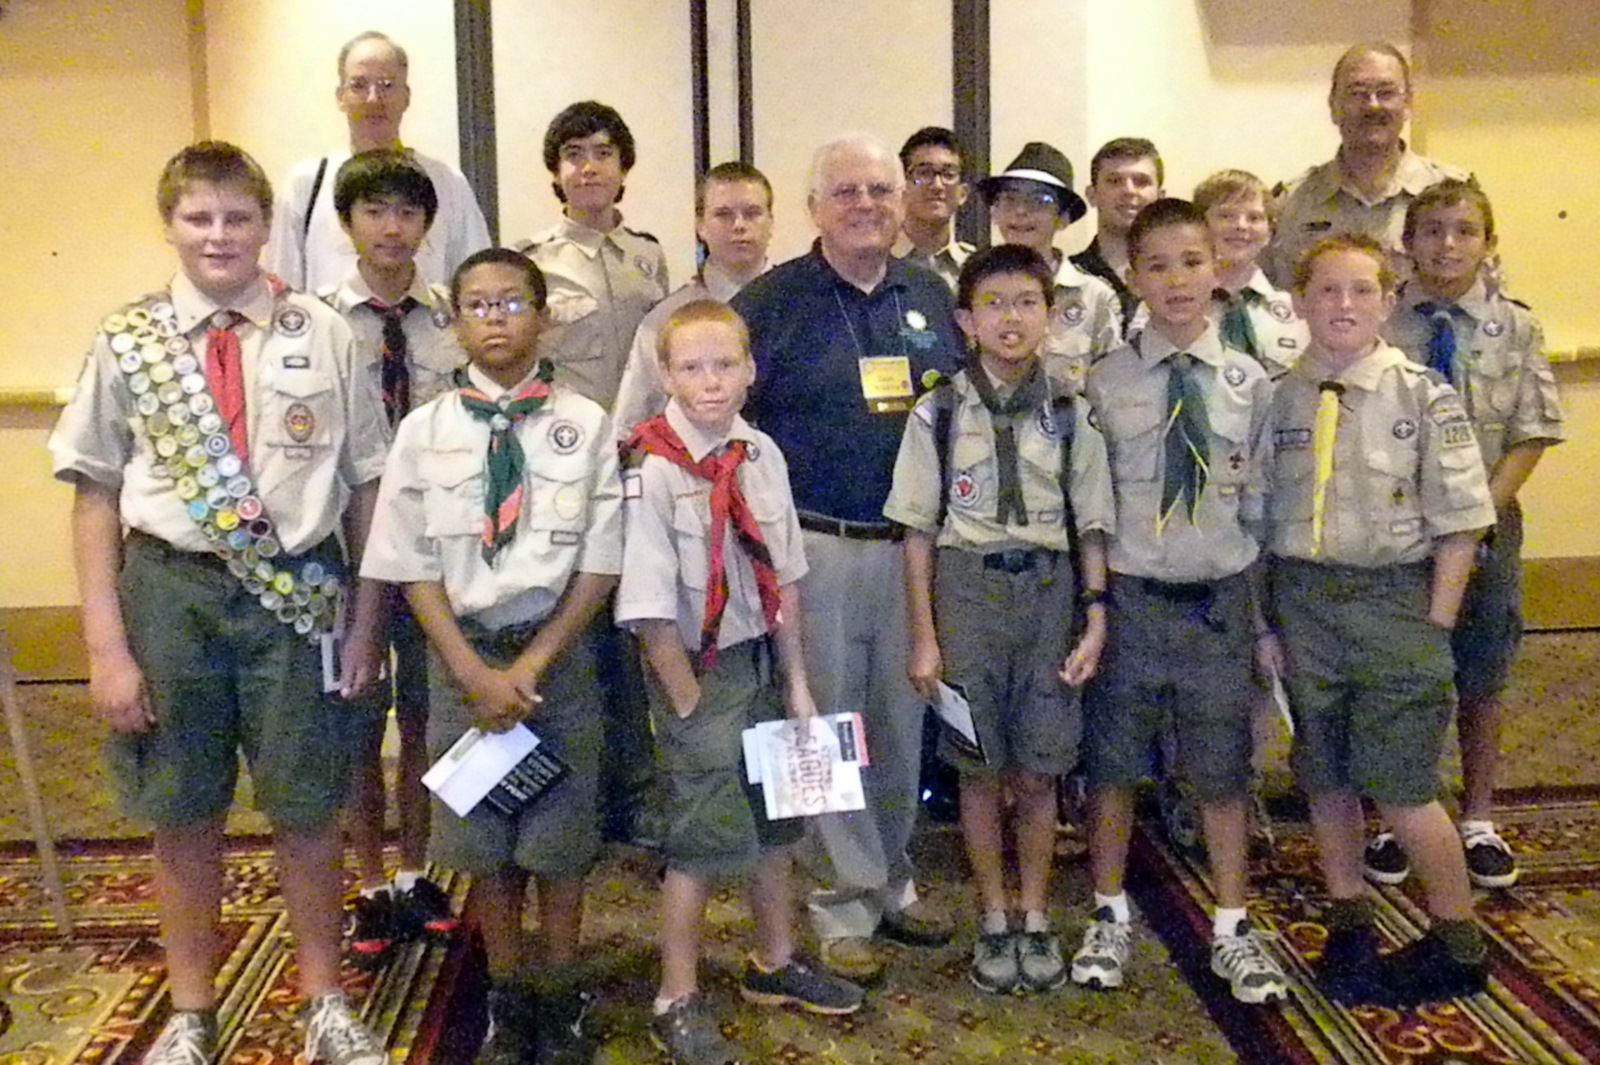 The Stamp Collecting Round Up Scouts Earn Stamp Collecting Merit Badge